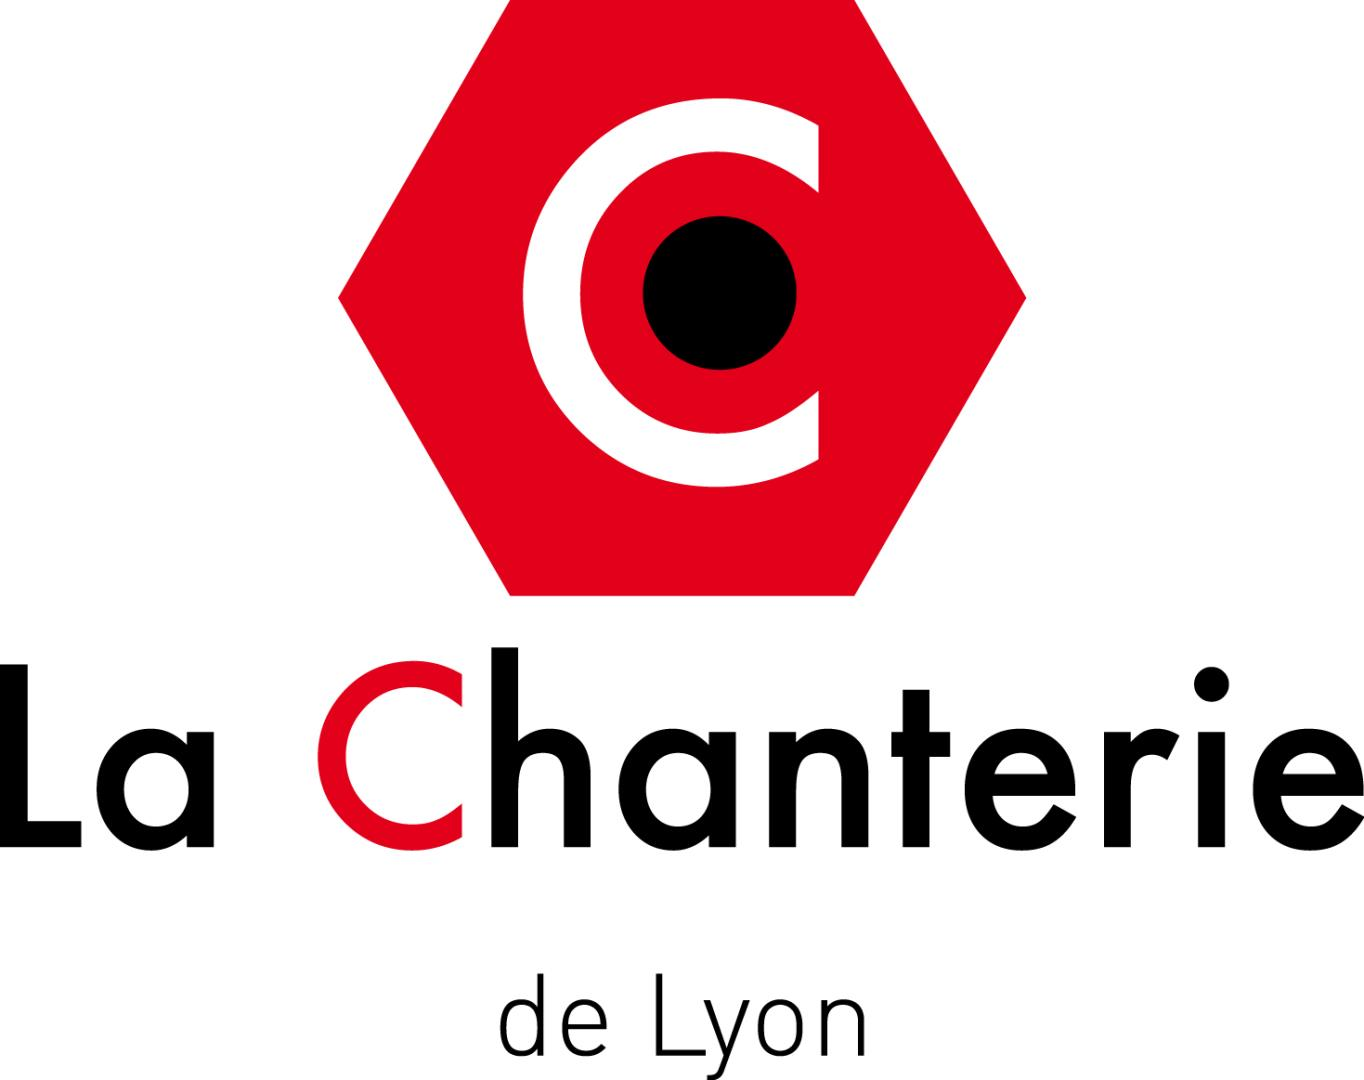 Association - Chanterie de Lyon